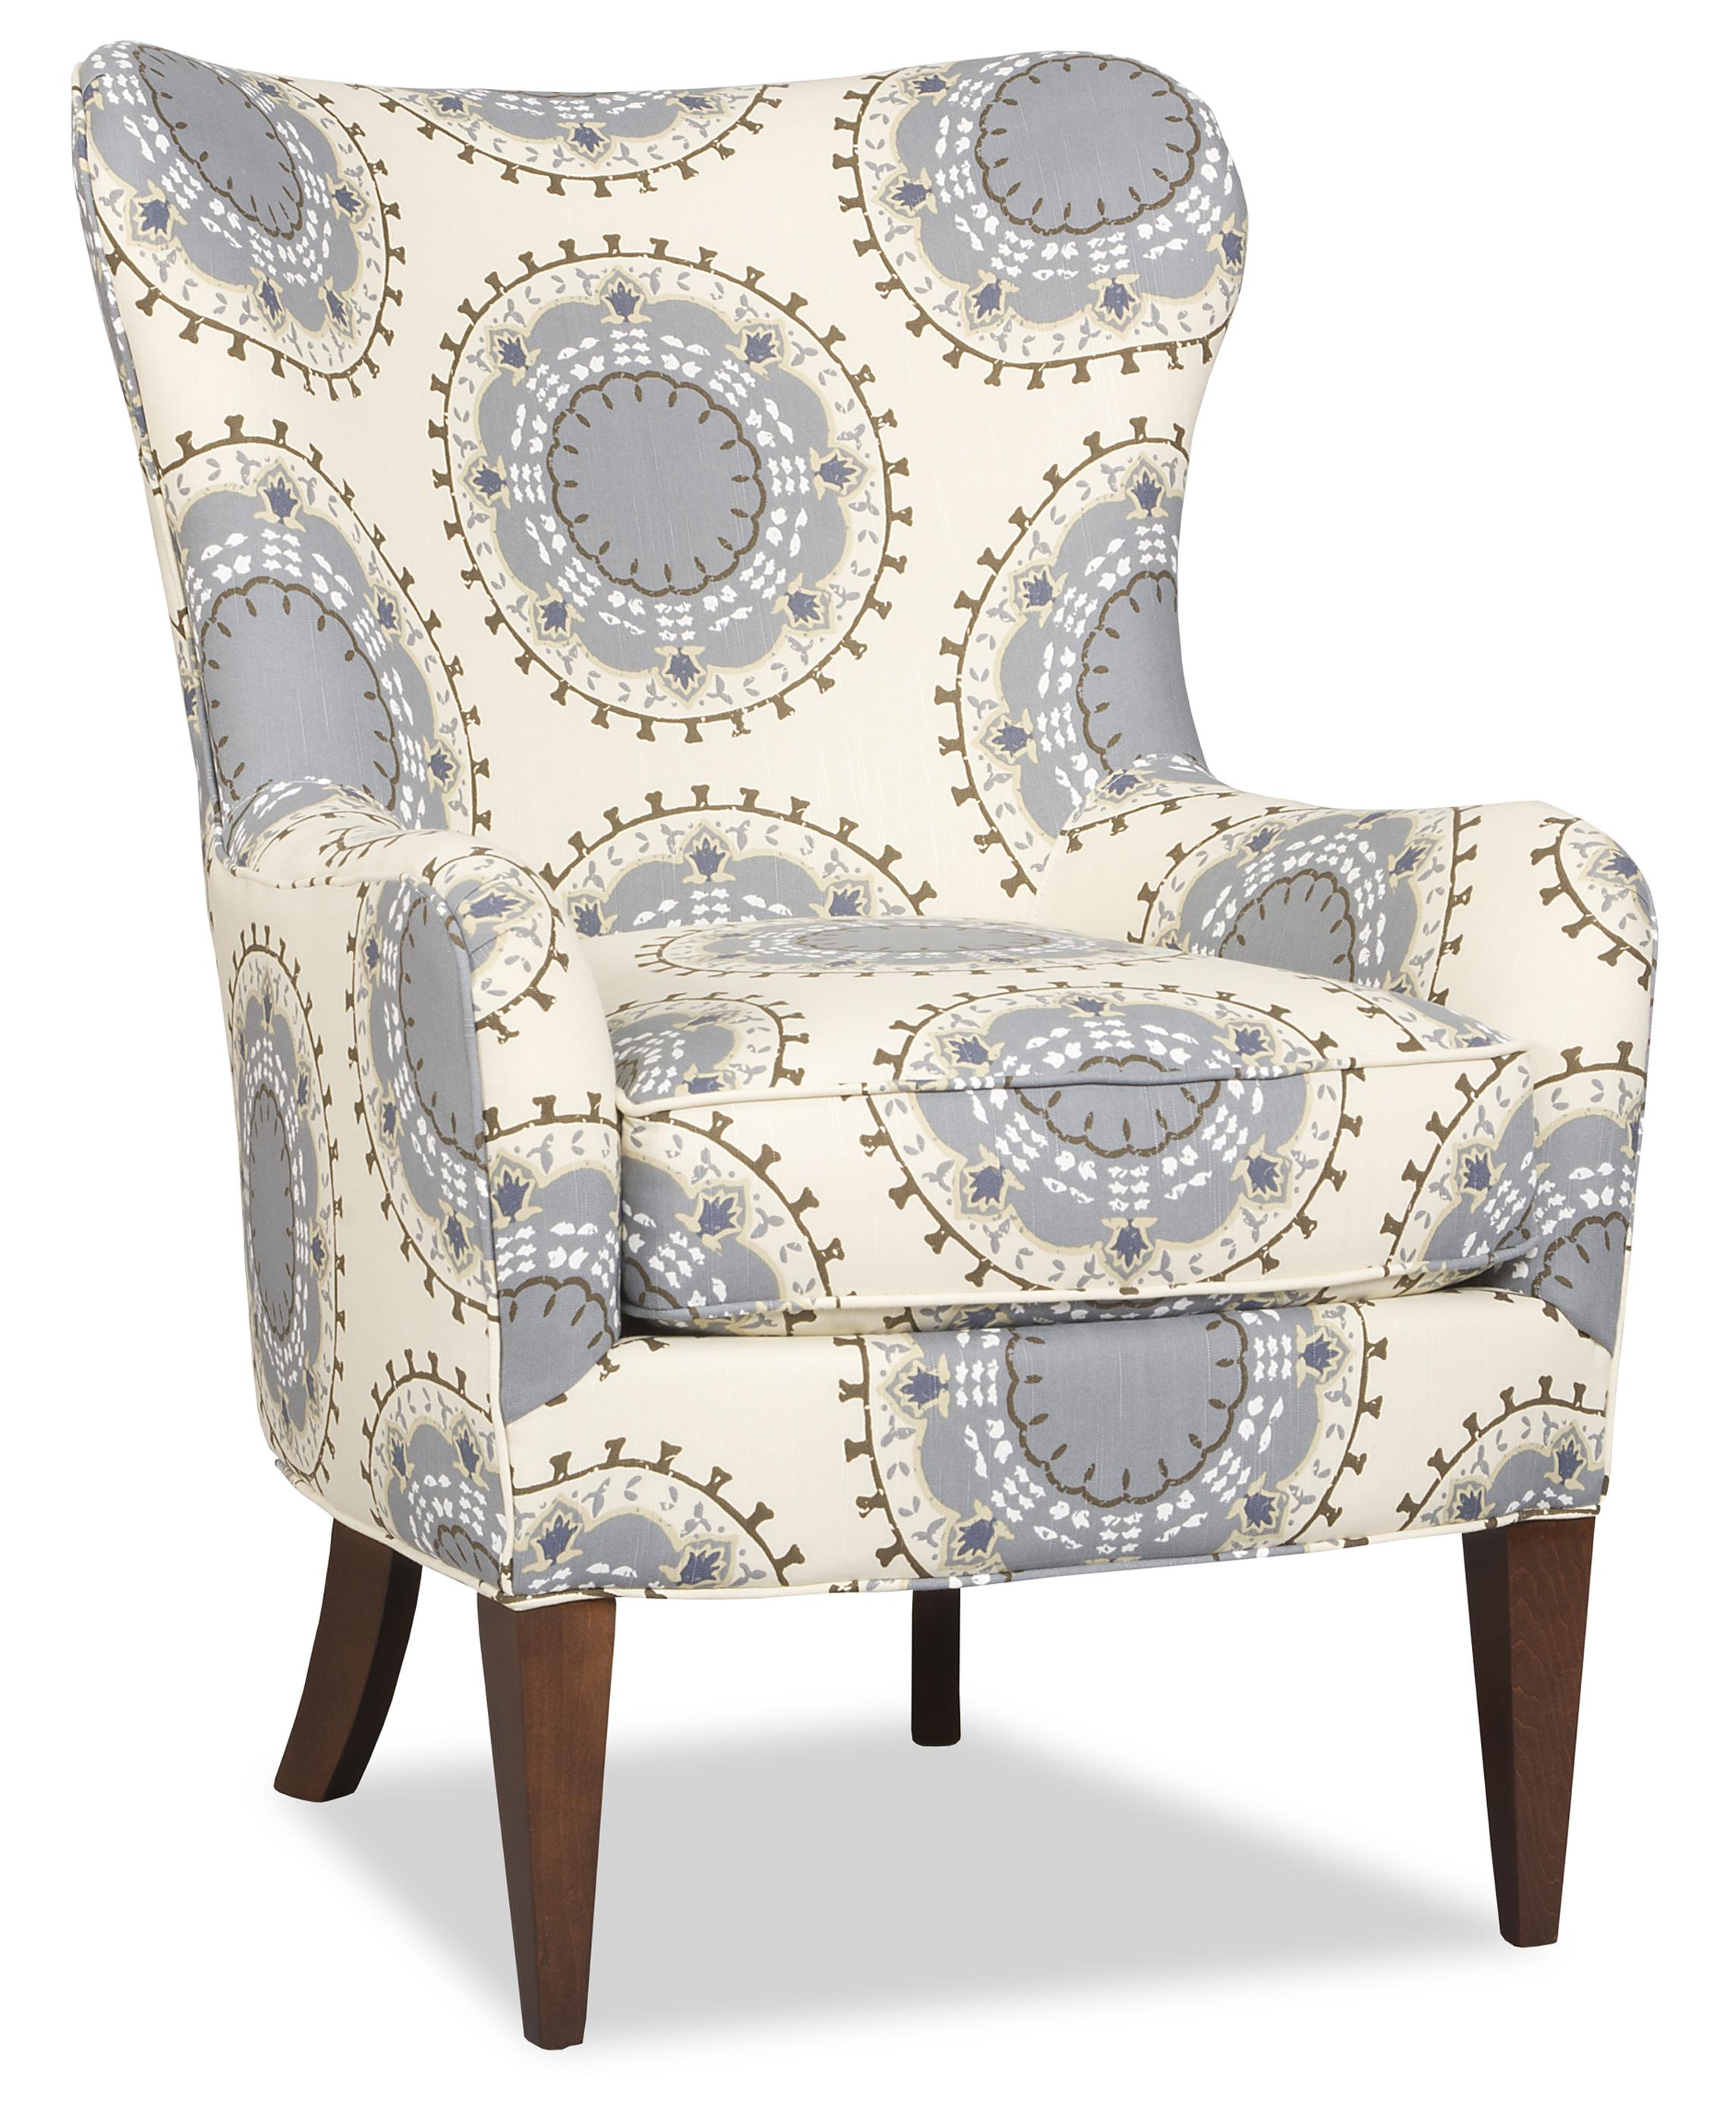 Merveilleux Contemporary Wing Chair With Tapered Wood Legs